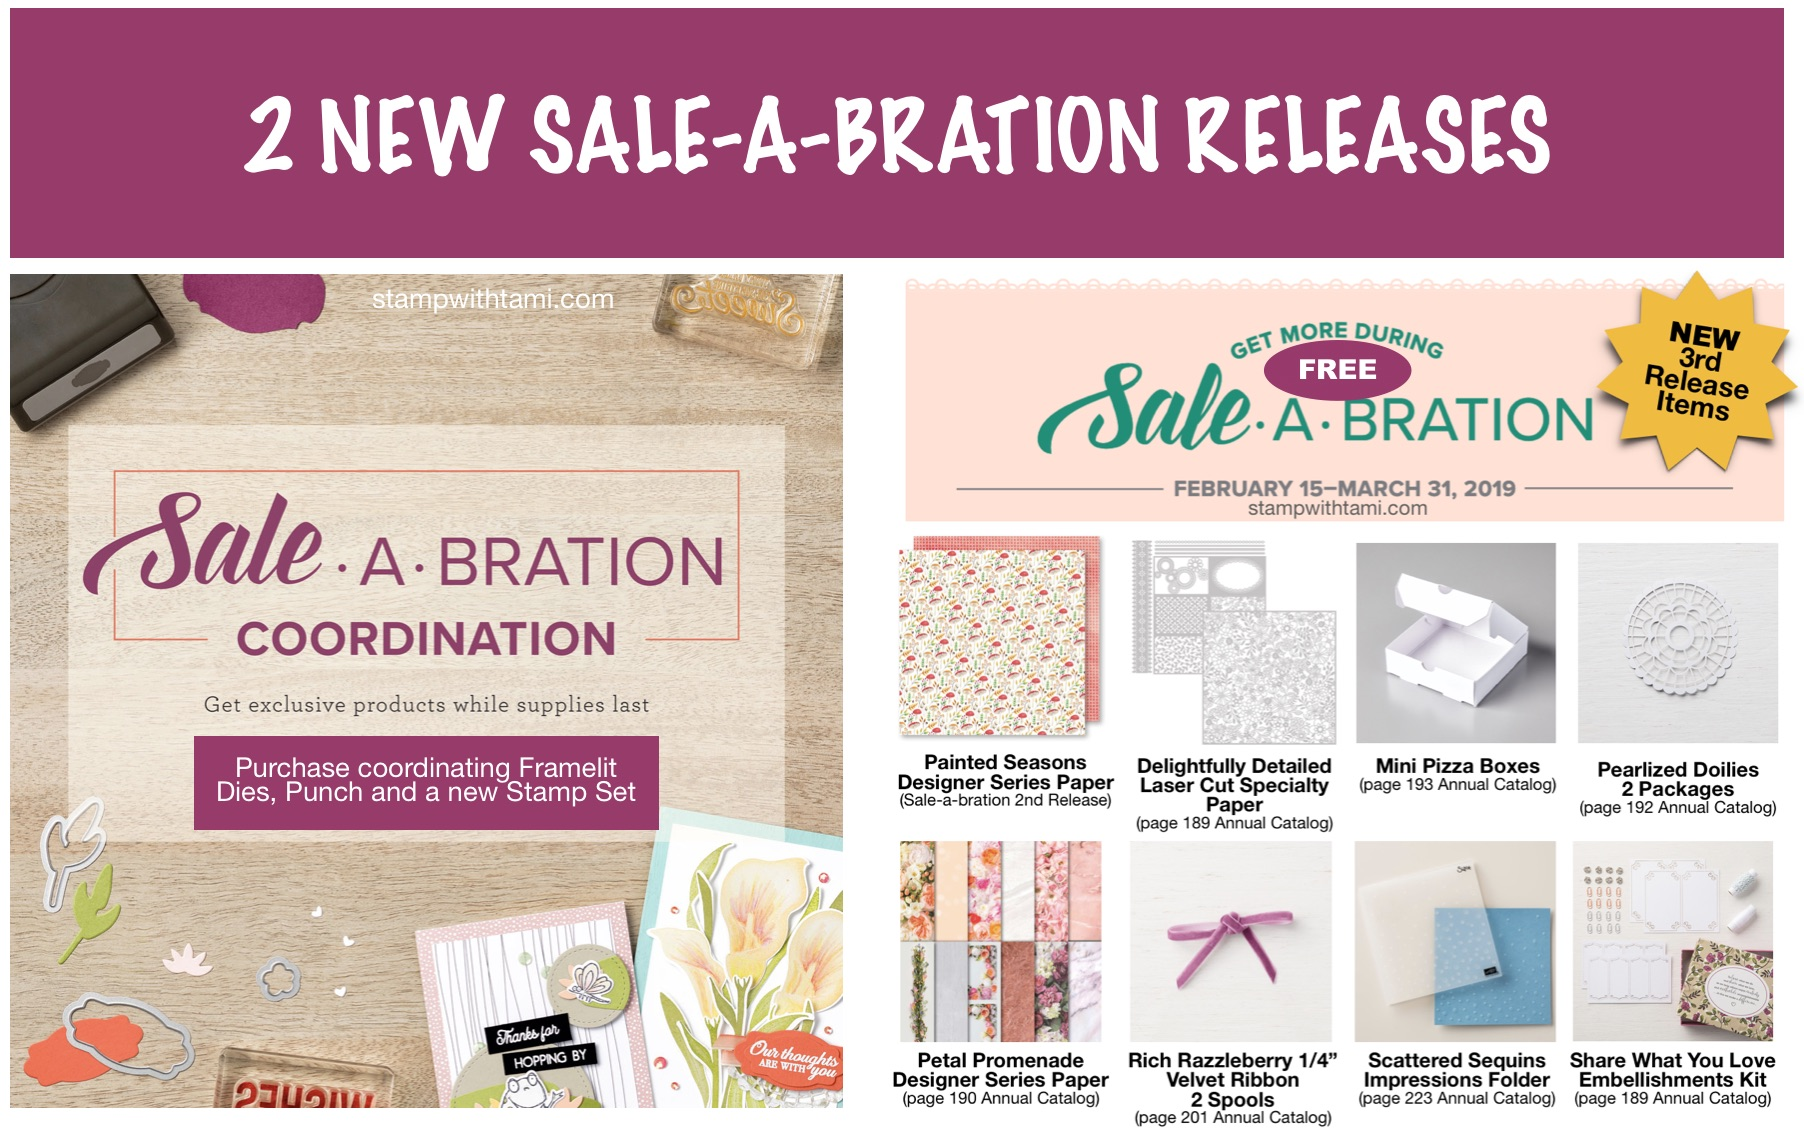 2 NEW Sale-a-bration Releases: 3rd Release & SAB